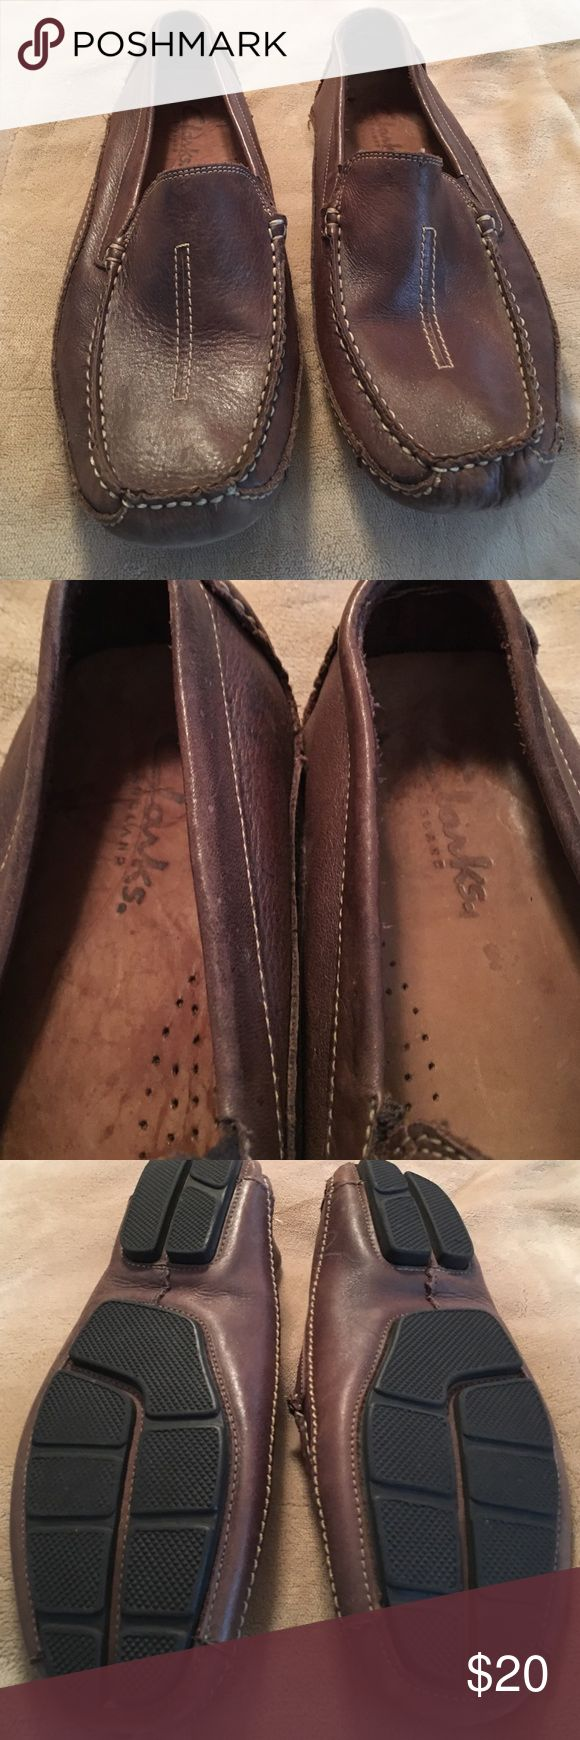 Men's brown loafers Men's brown loafers worn few times in very good condition Clarks Shoes Boat Shoes